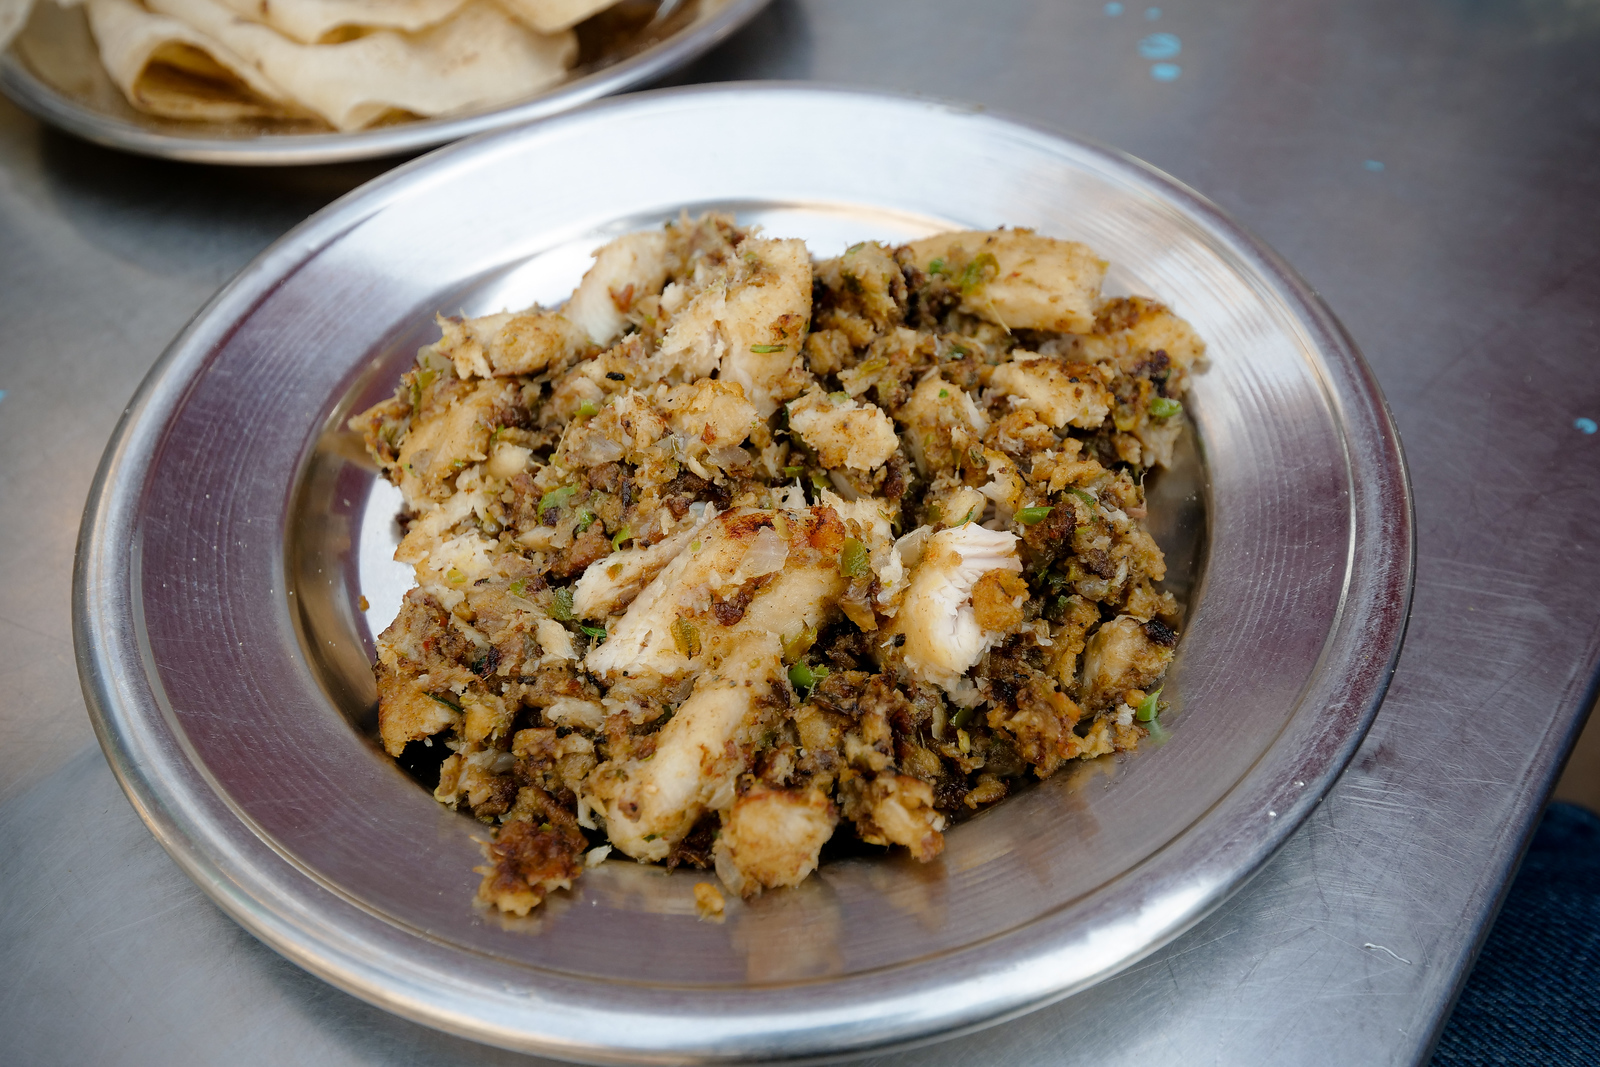 Tasty masala spiced chopped fish, you won't believe how good this food is